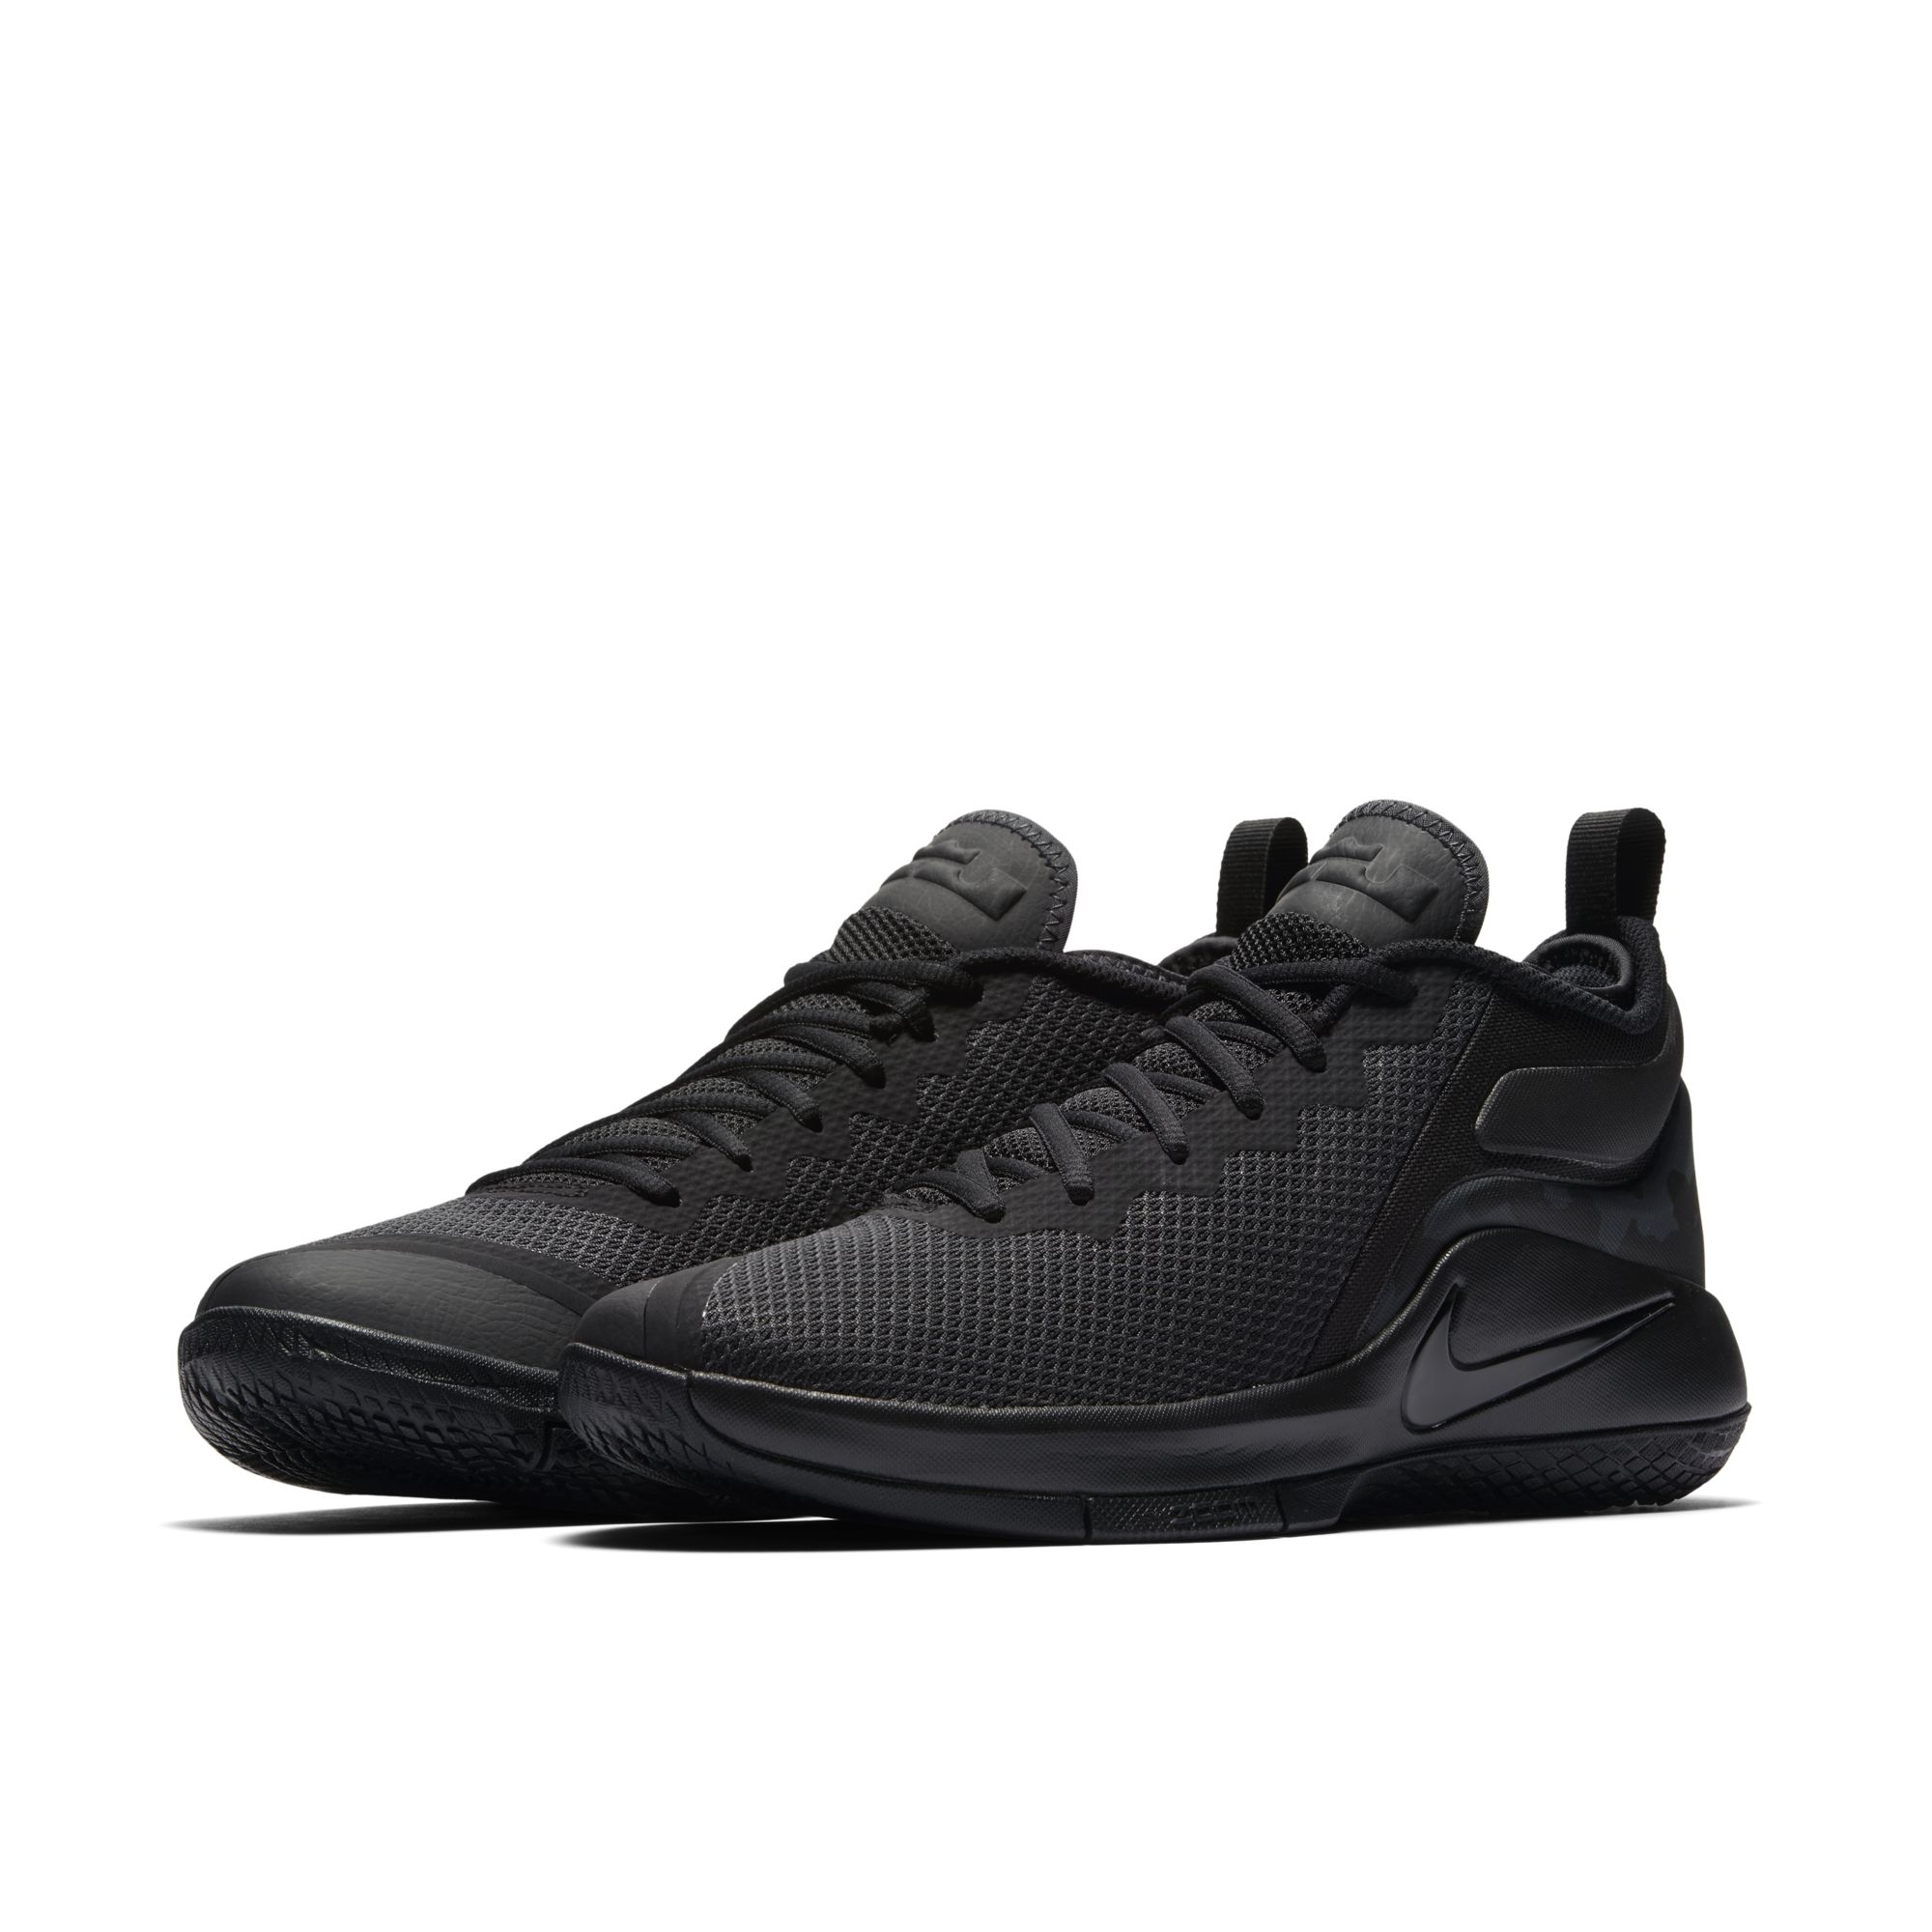 The Nike LeBron Witness 2 Has Arrived - WearTesters